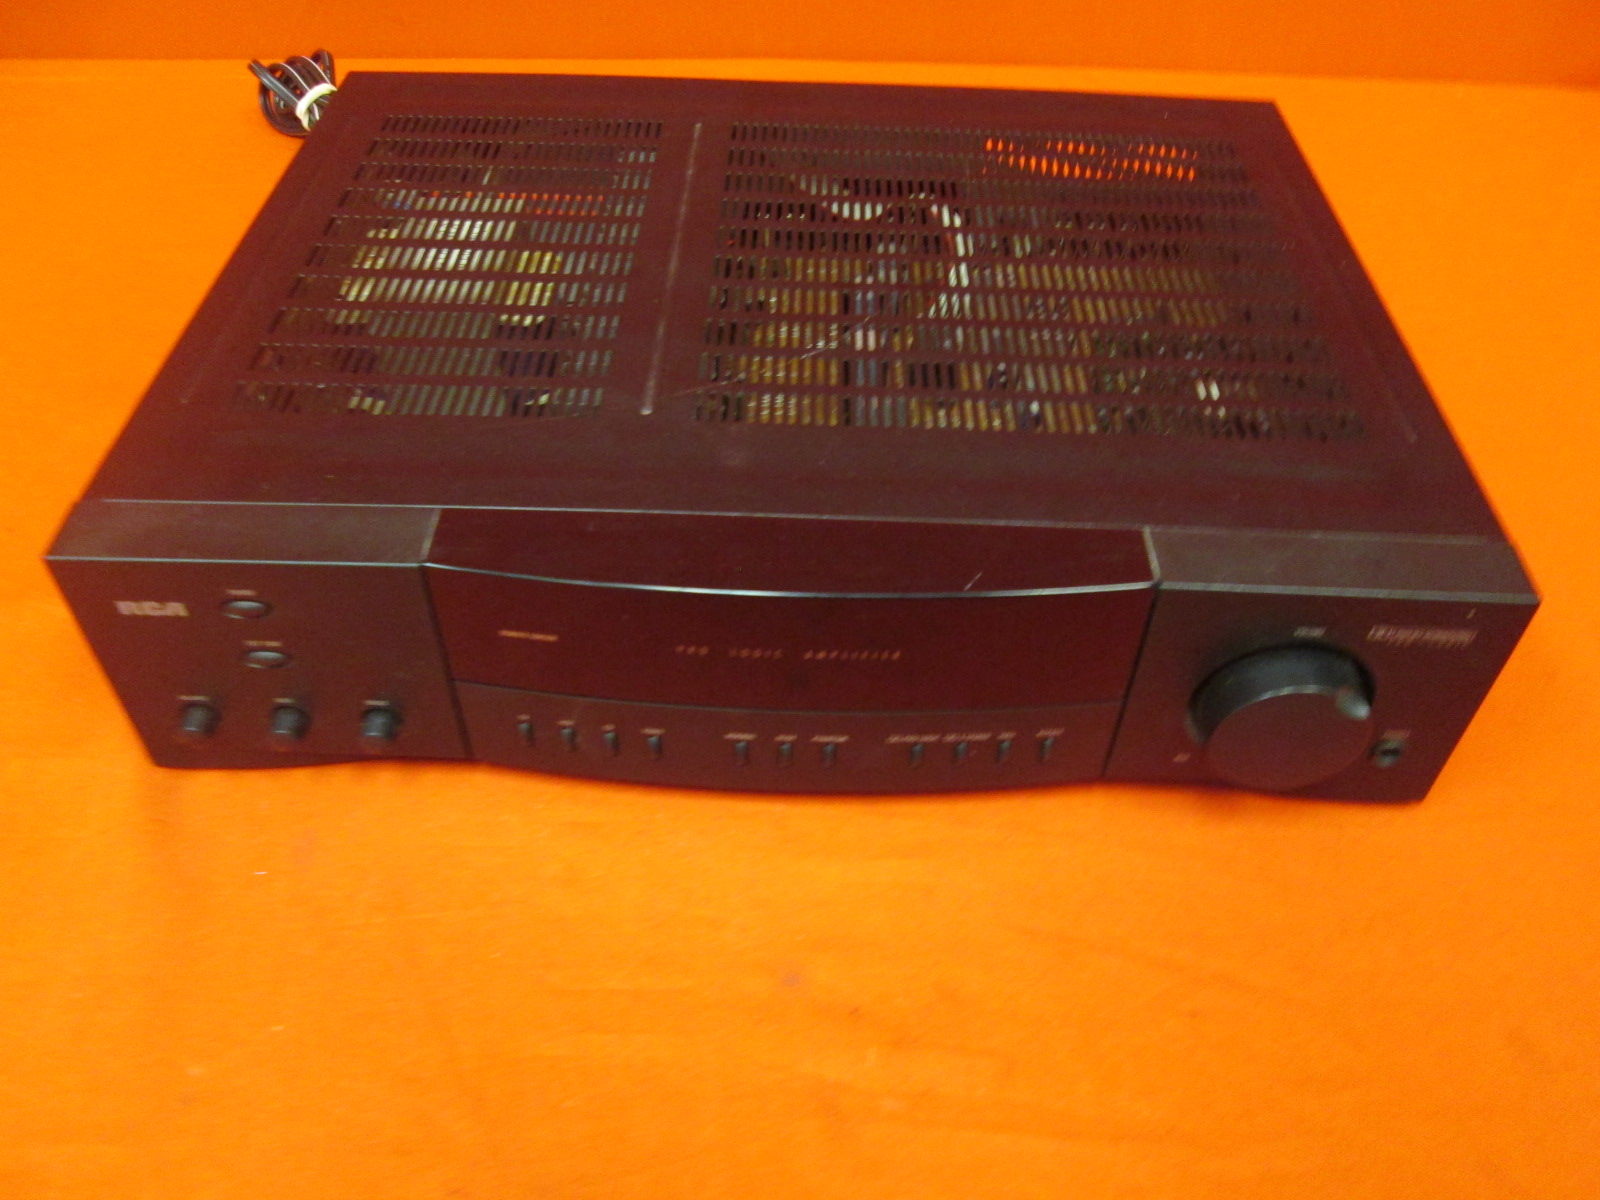 Broken RCA RV-9910A Home Theater Receiver